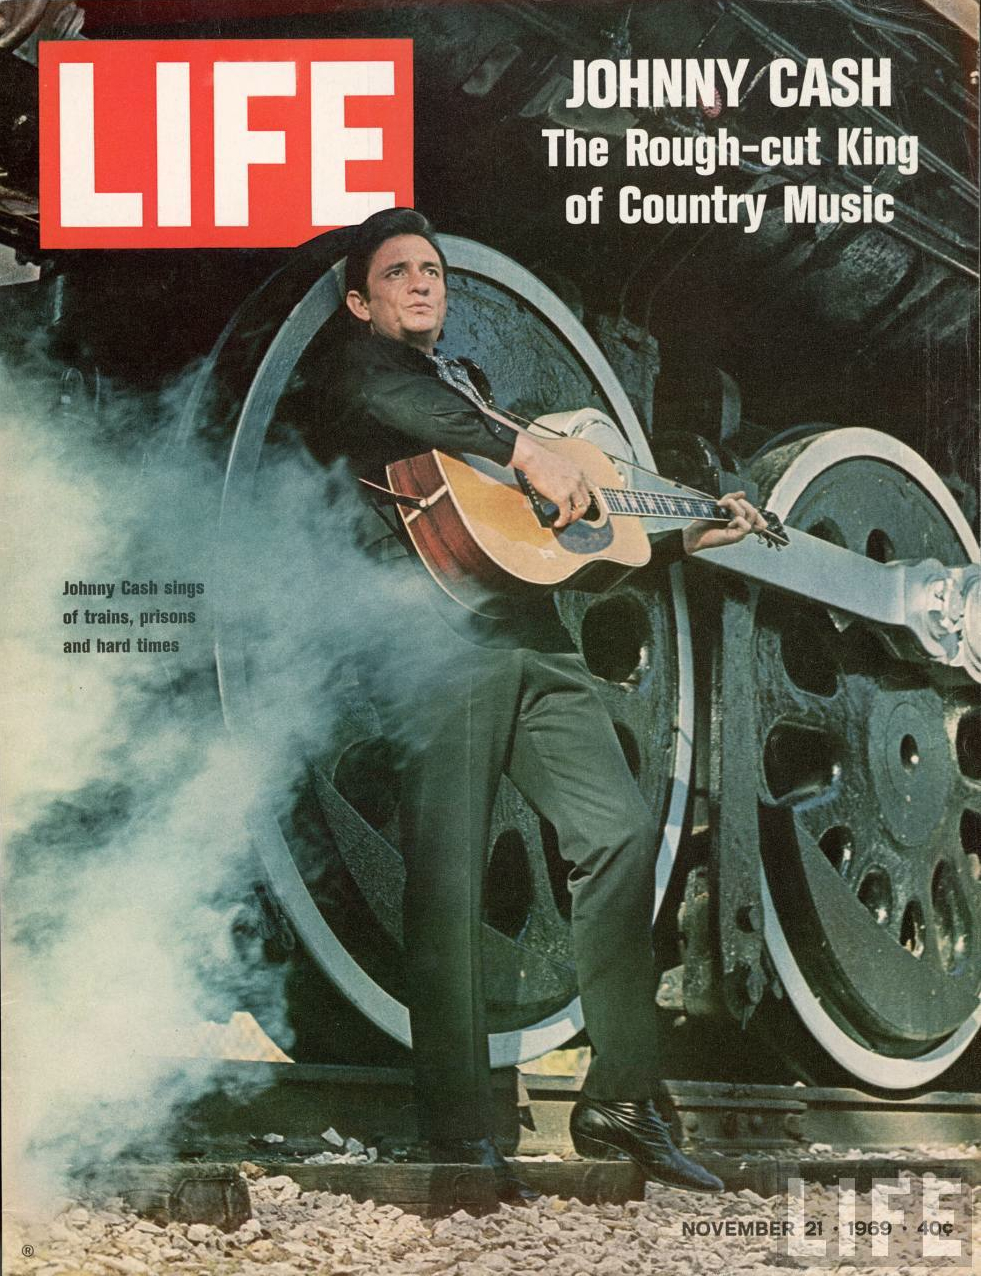 Johnny Cash in front of a train, on the cover of Life Magazine